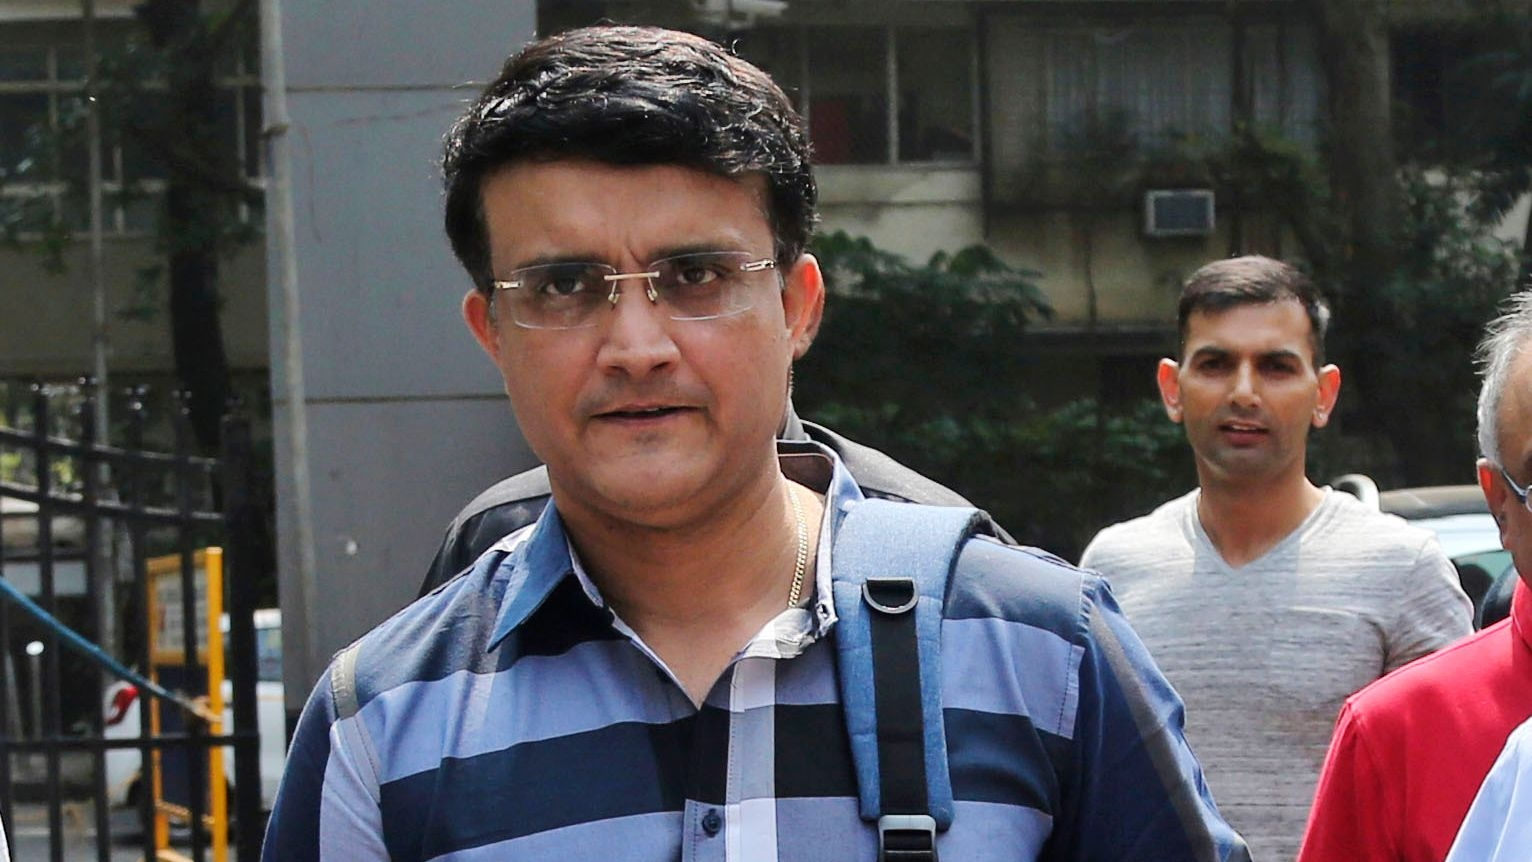 QKolkata: 'No Political Angle To My Post', Says Sourav & More